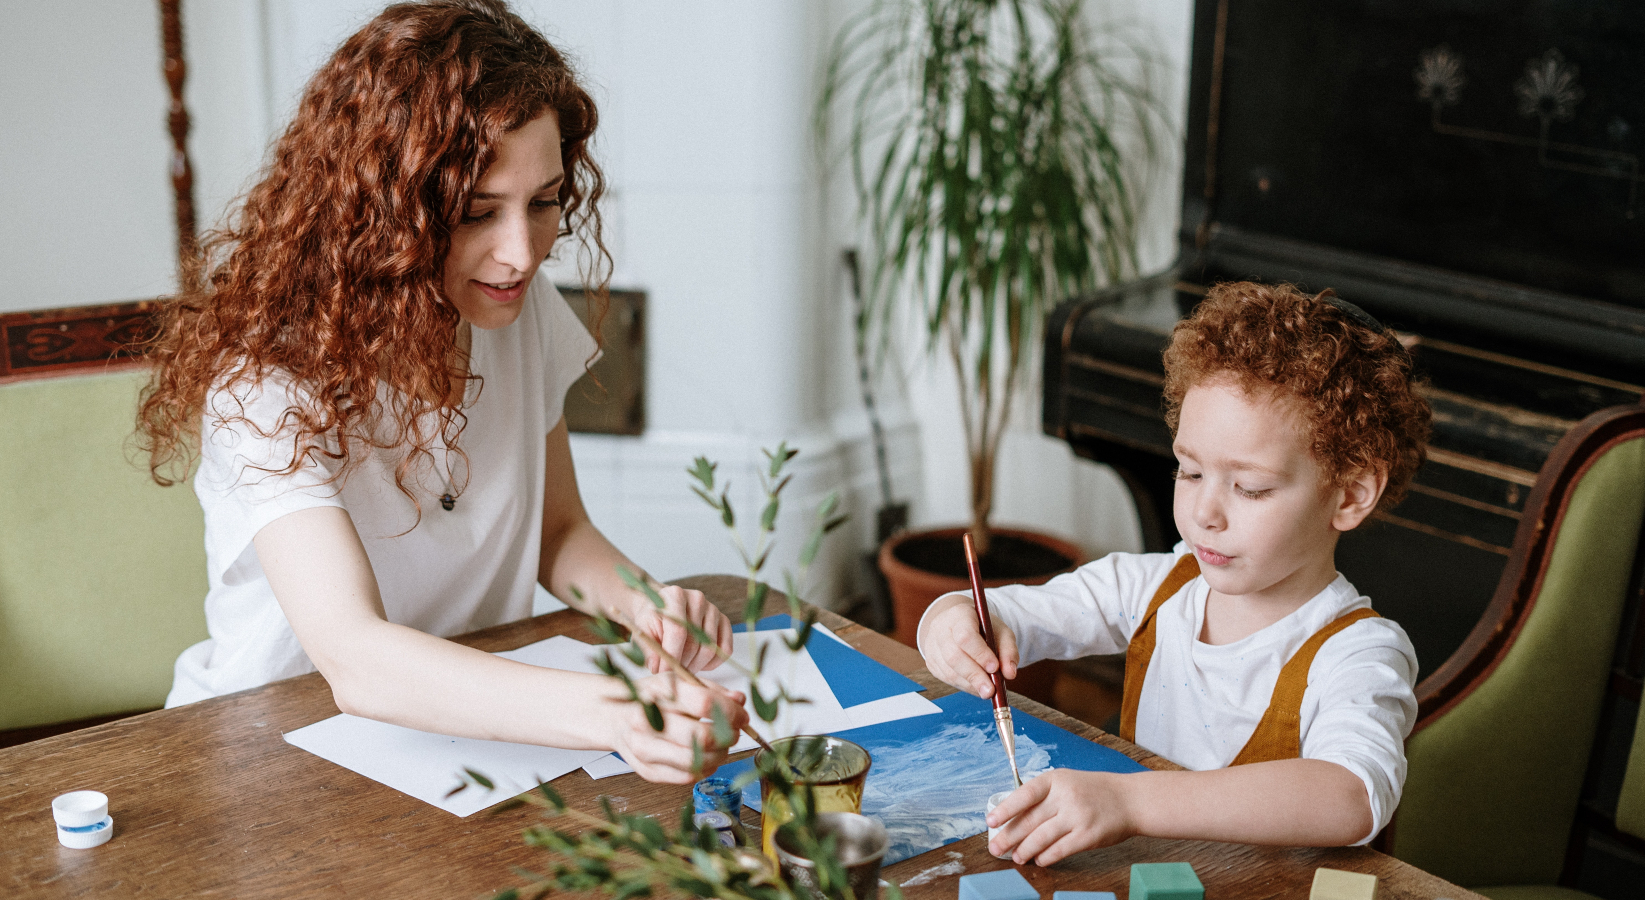 A woman painting with her child